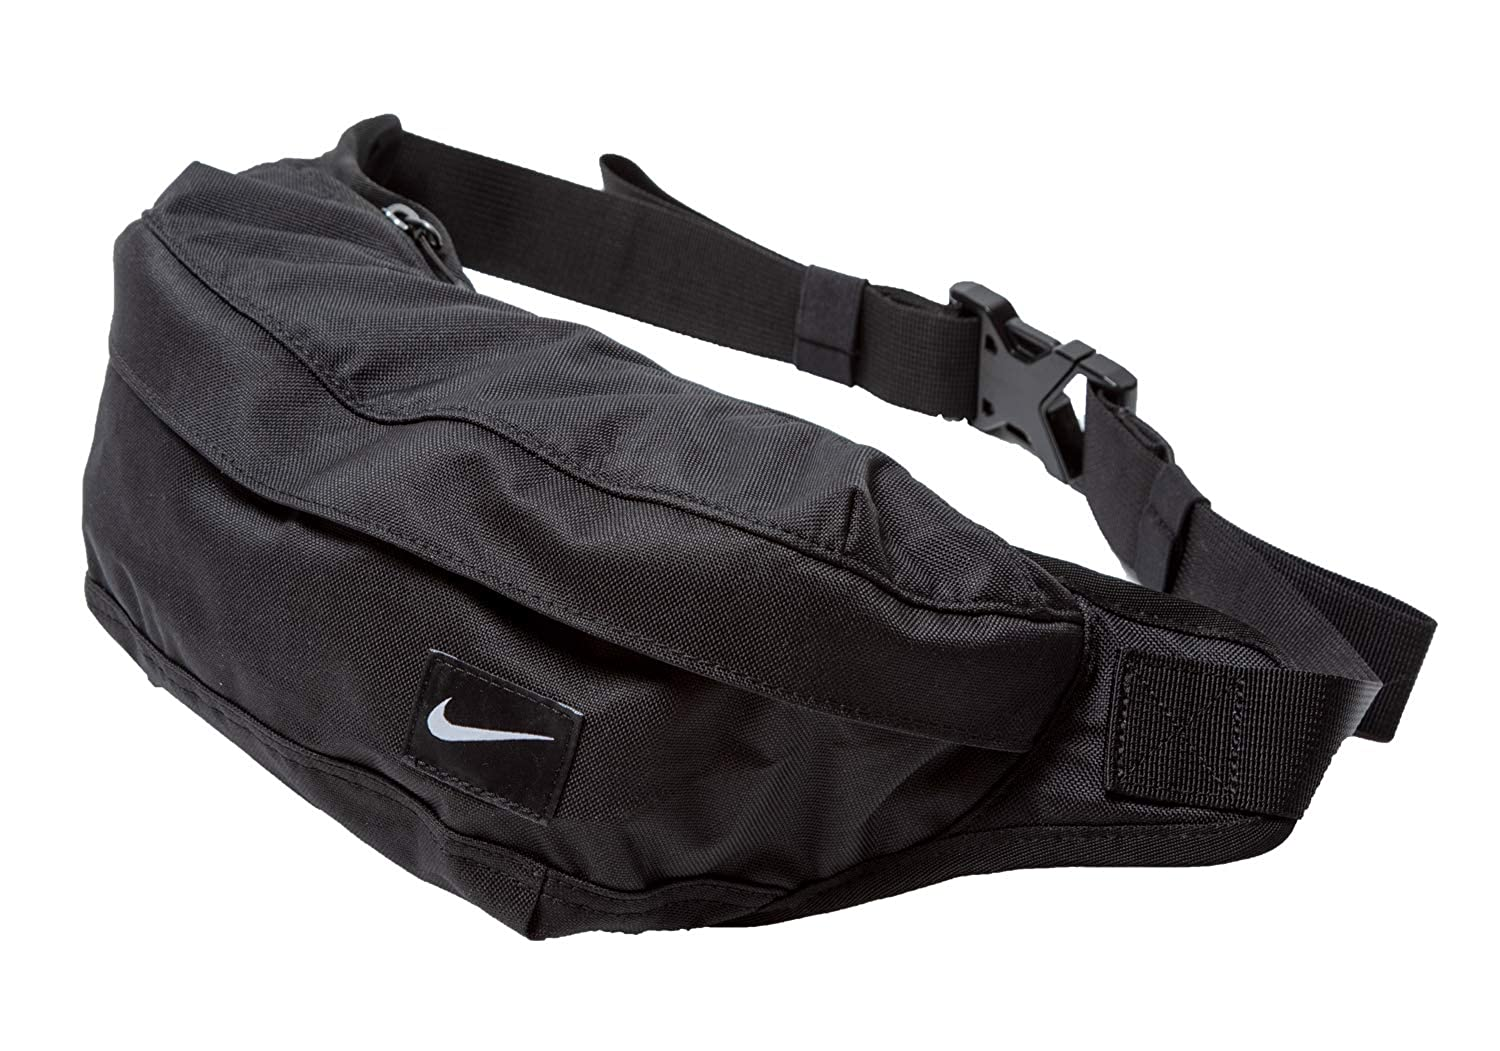 0cfa495cf5 Nike Black Bum Bag Cordura Fanny Pack Waist Pouch Travel Belt Wallet  45x14x8, 5cm: Amazon.co.uk: Shoes & Bags